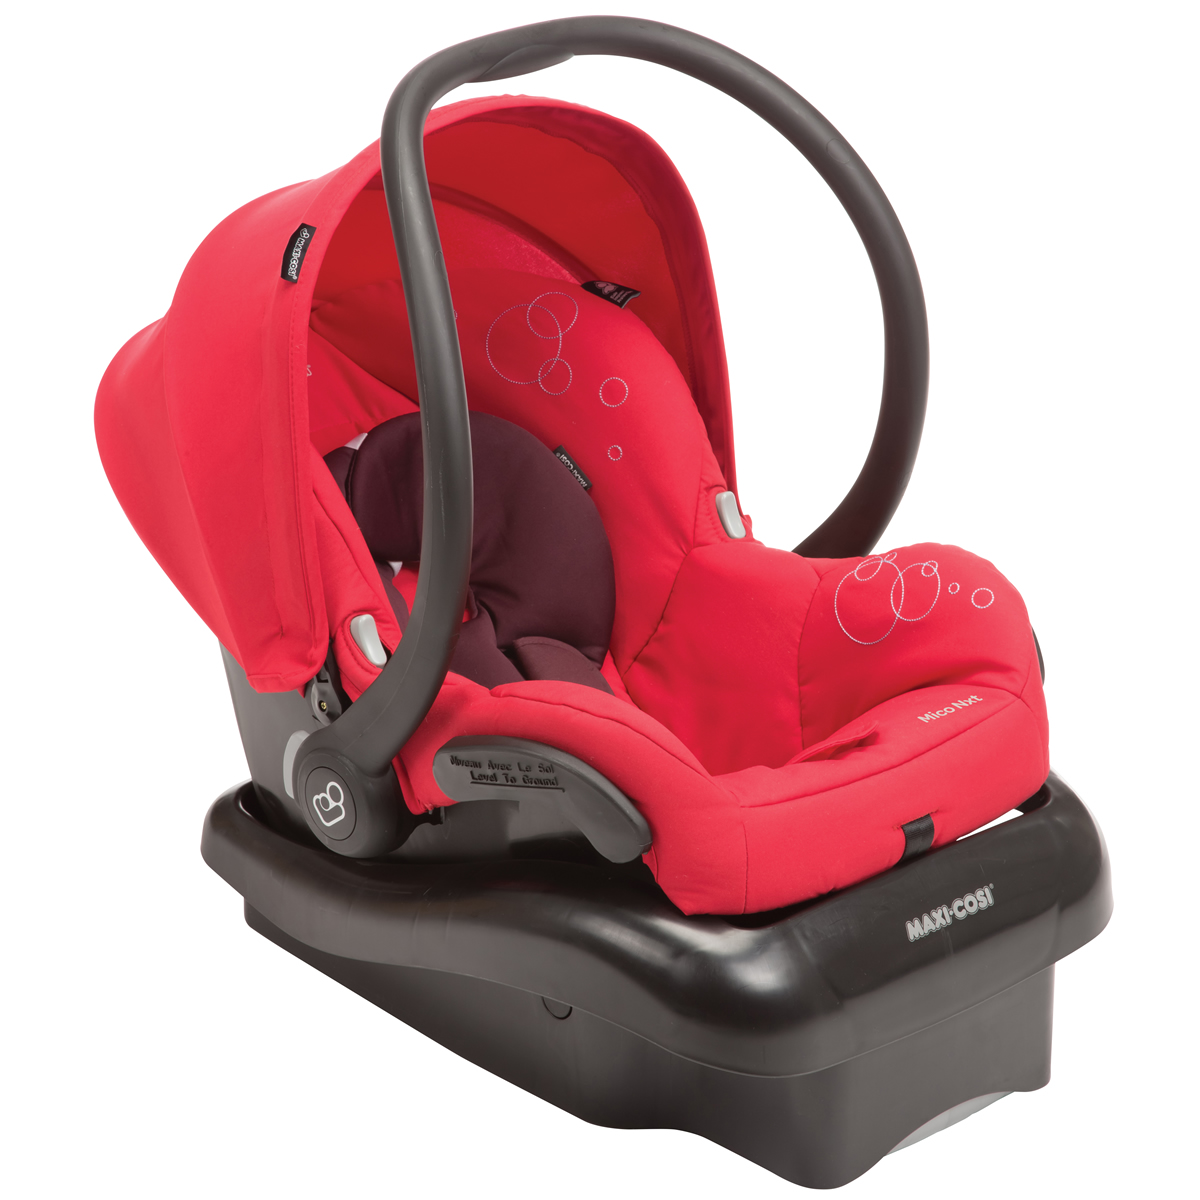 MAXI-COSI Mico Nxt Infant Car Seat - Intense Red - IC166INT